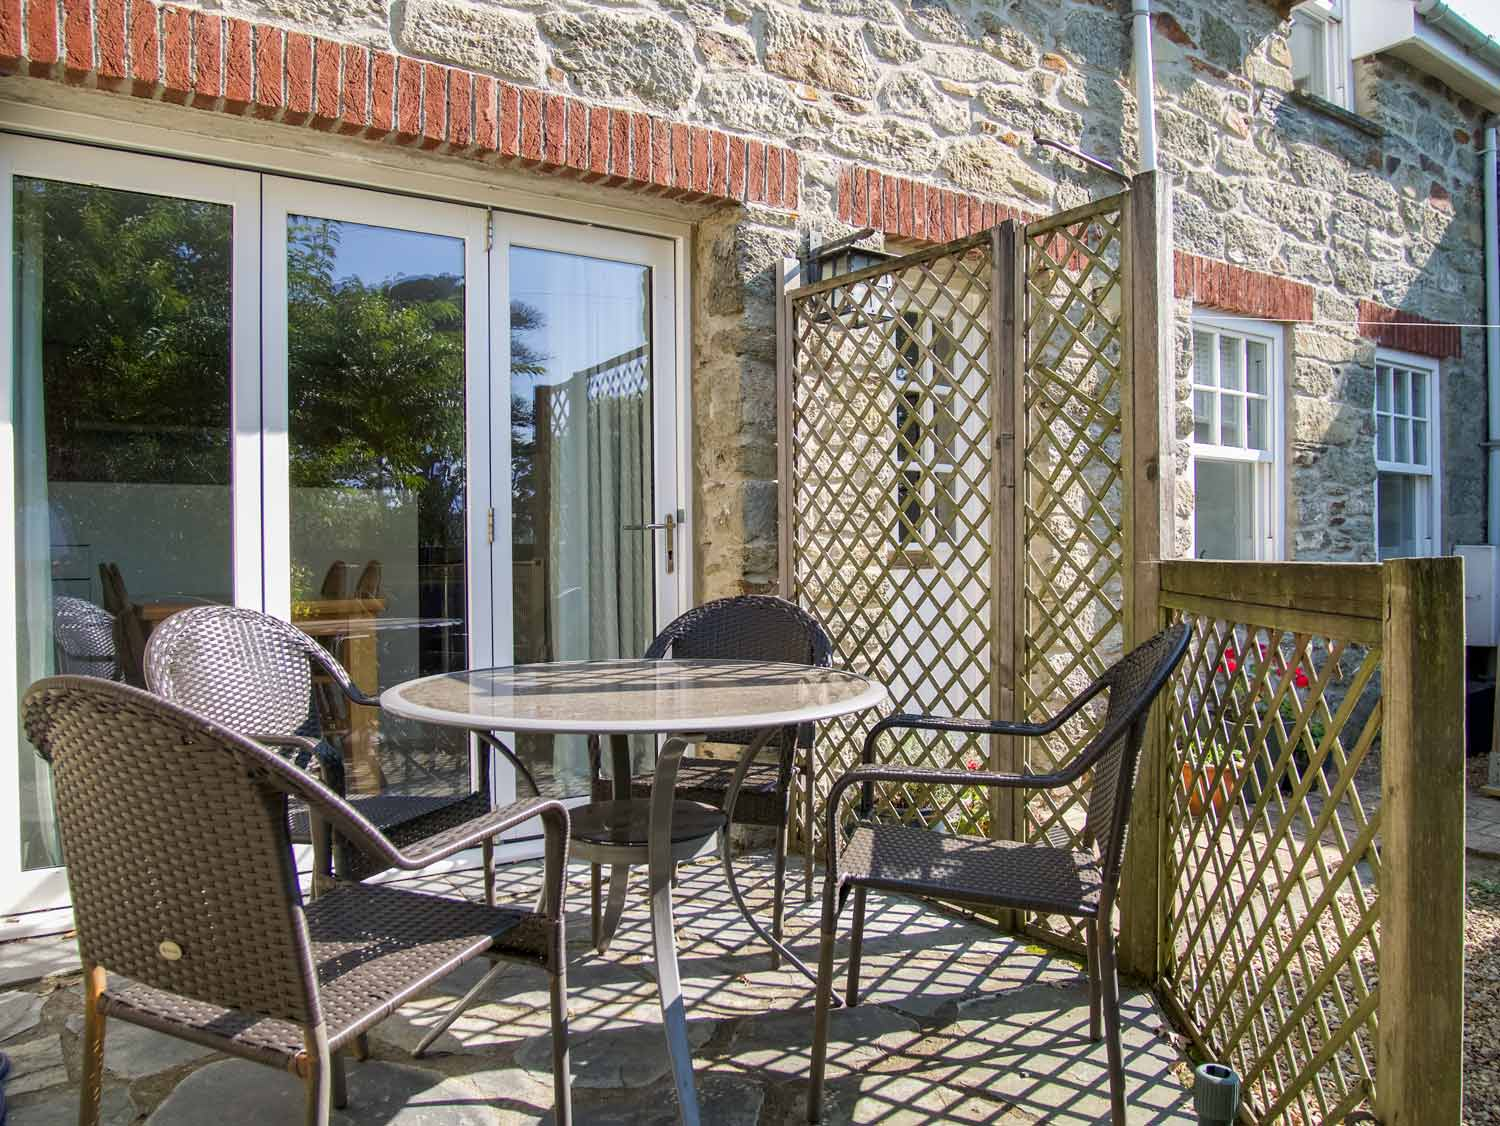 Stable Cottage Outdoor Seating Area